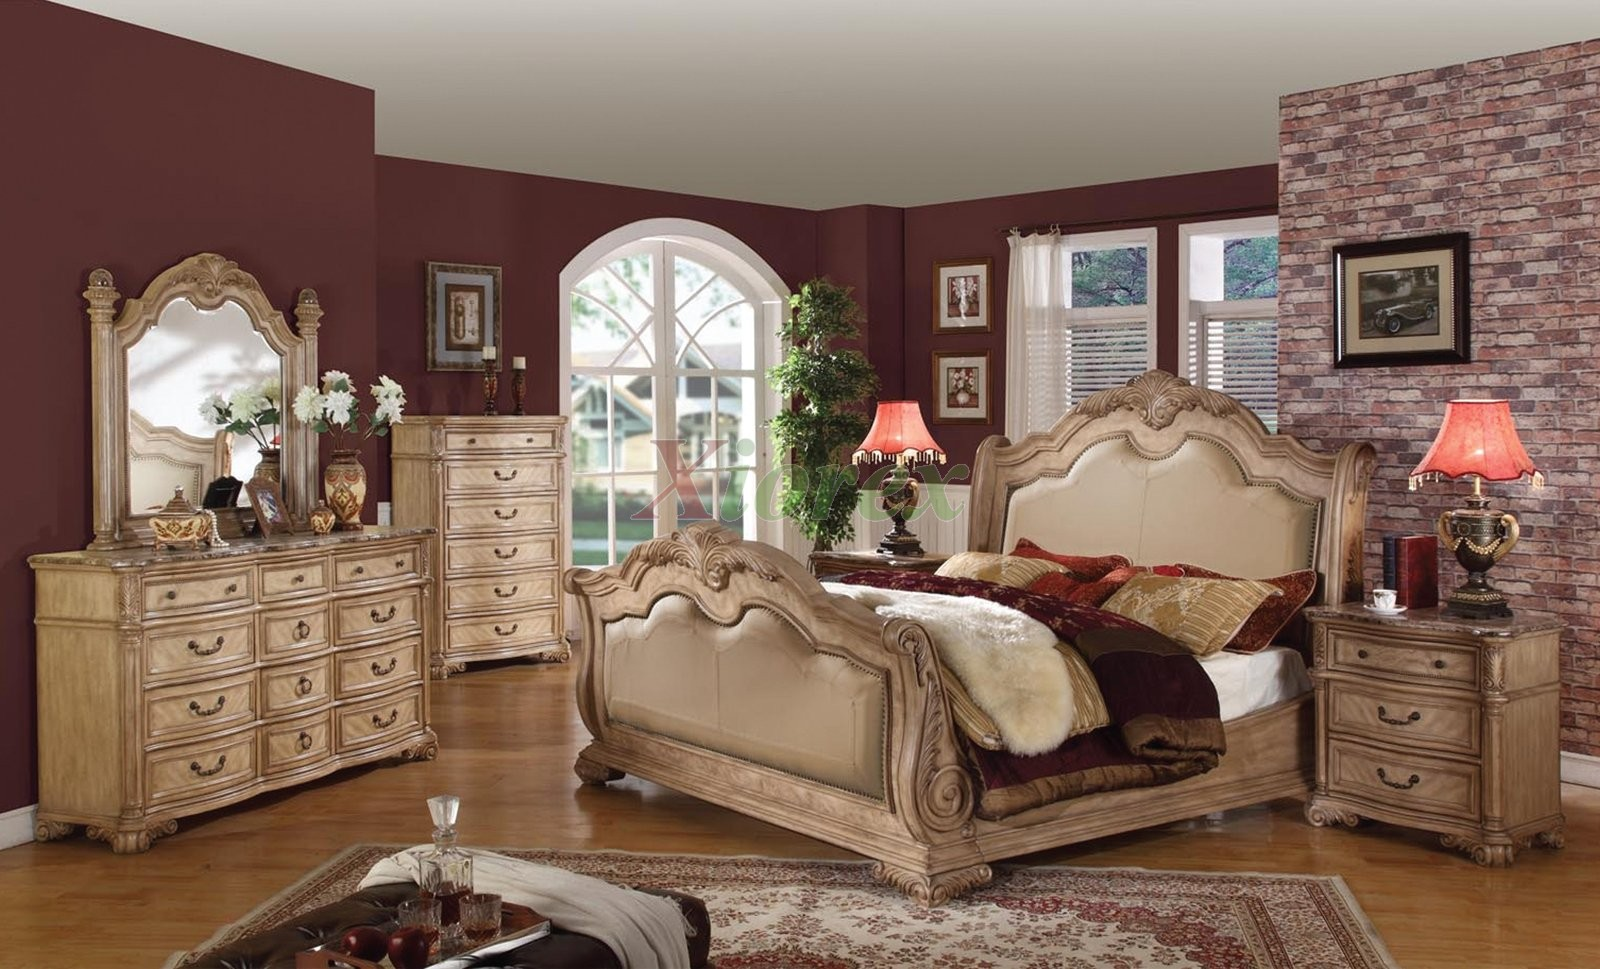 Sleigh Bedroom Set With Leather Headboard And Footboard | Xiorex ...